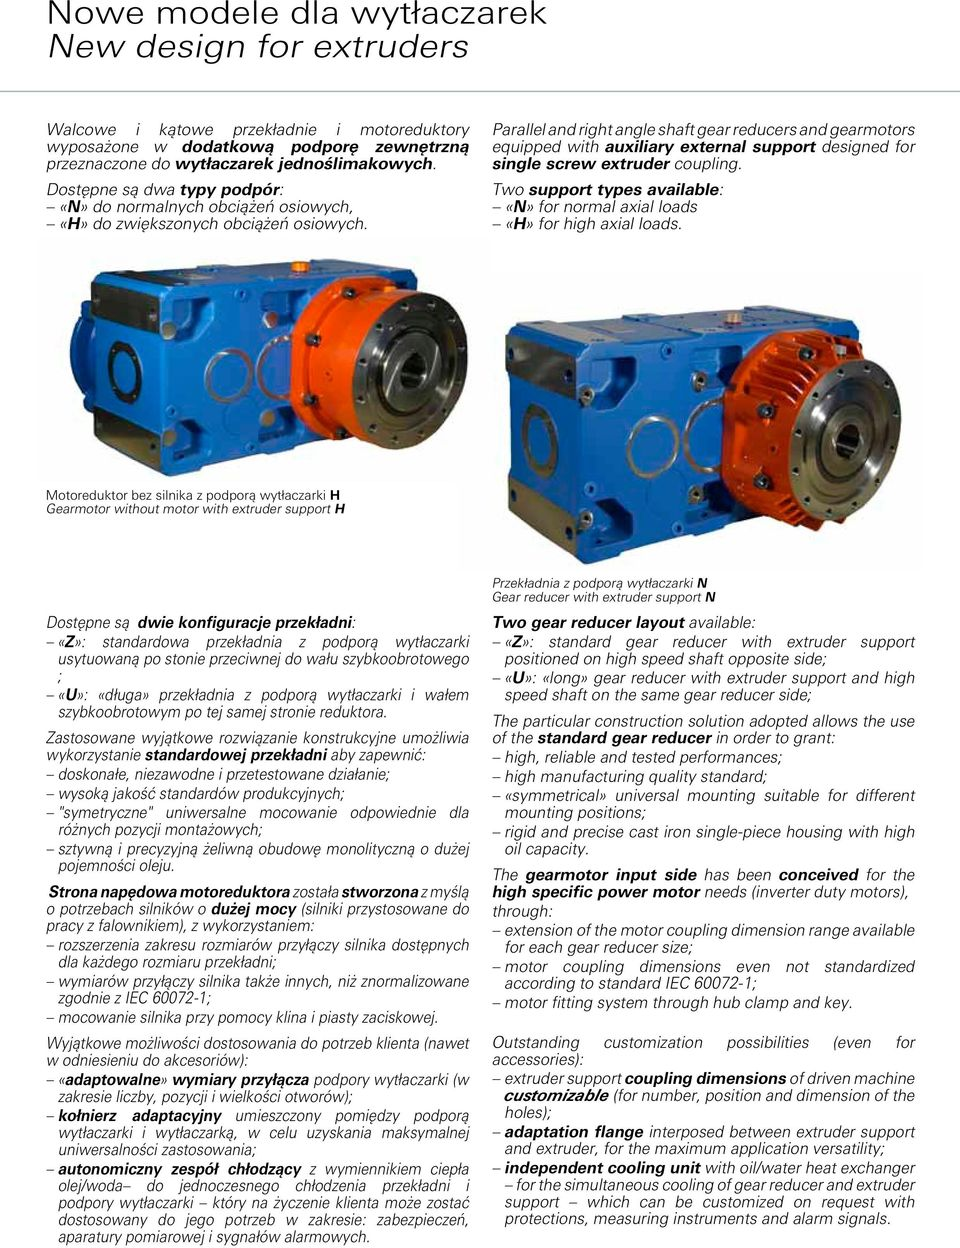 Parallel and right angle shaft gear reducers and gearmotors equipped with auxiliary external support designed for single screw extruder coupling.